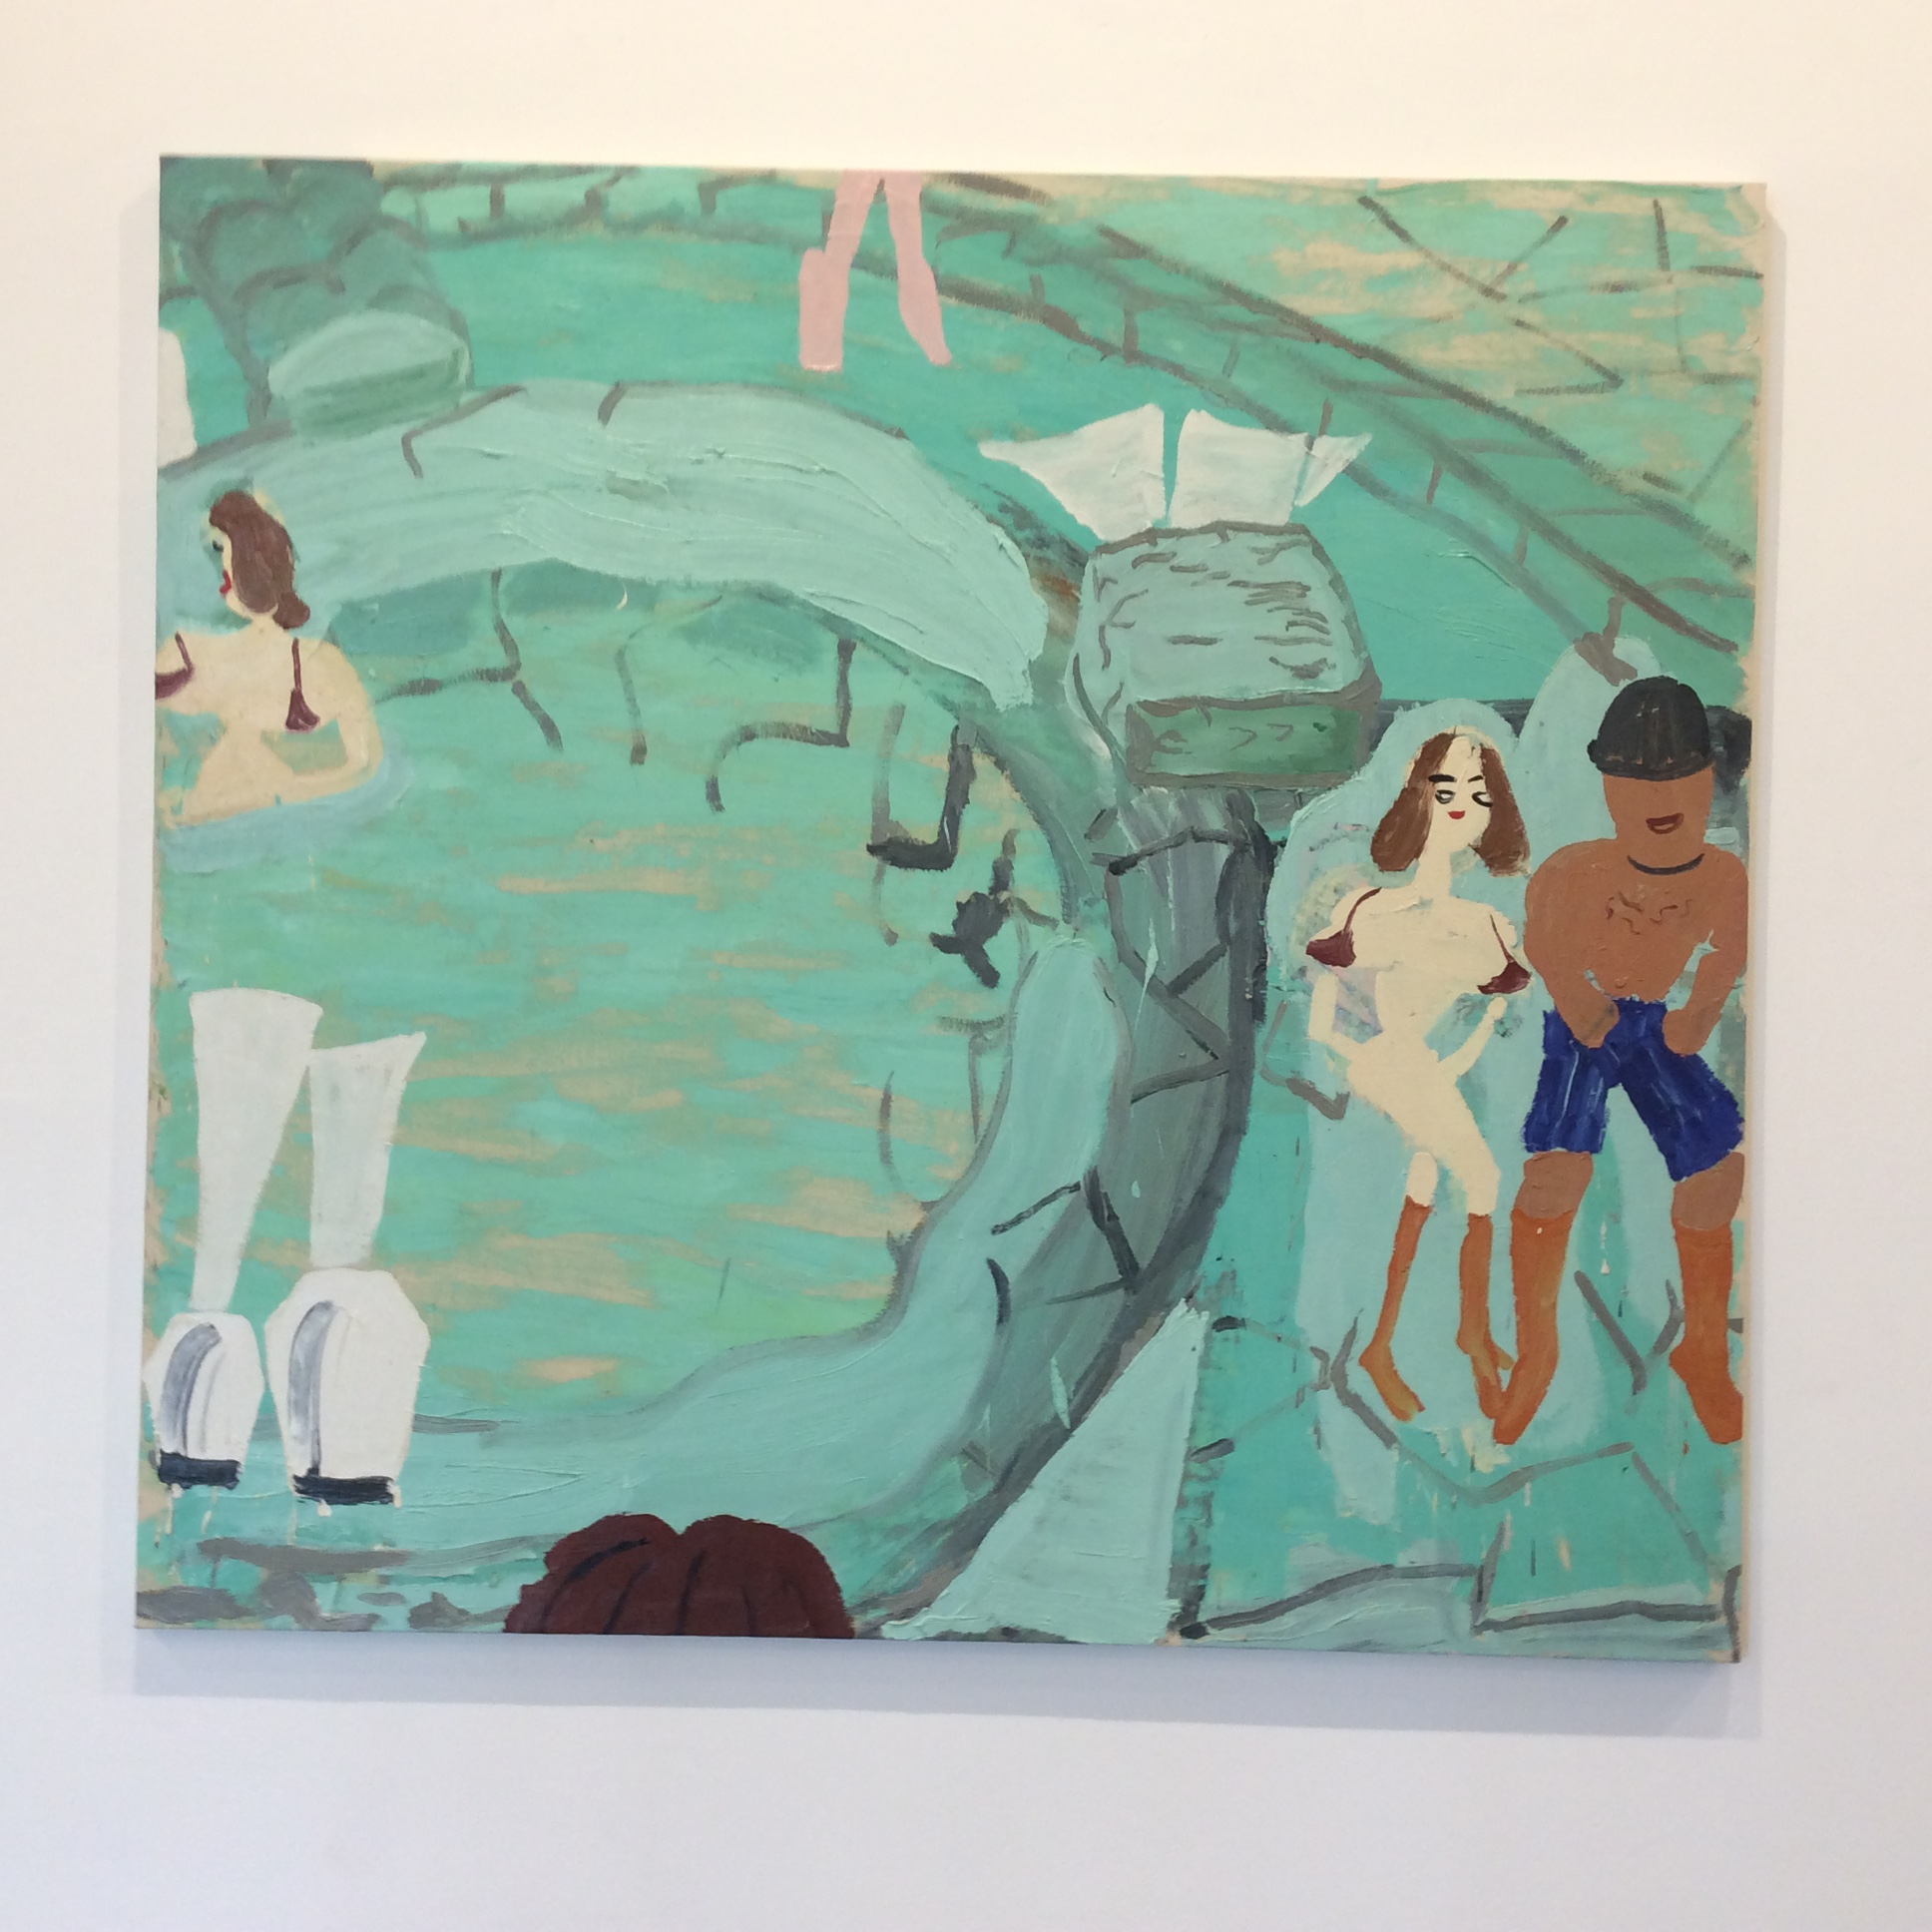 A photograph taken on the art trip of one of Rose Wylie's paintings.